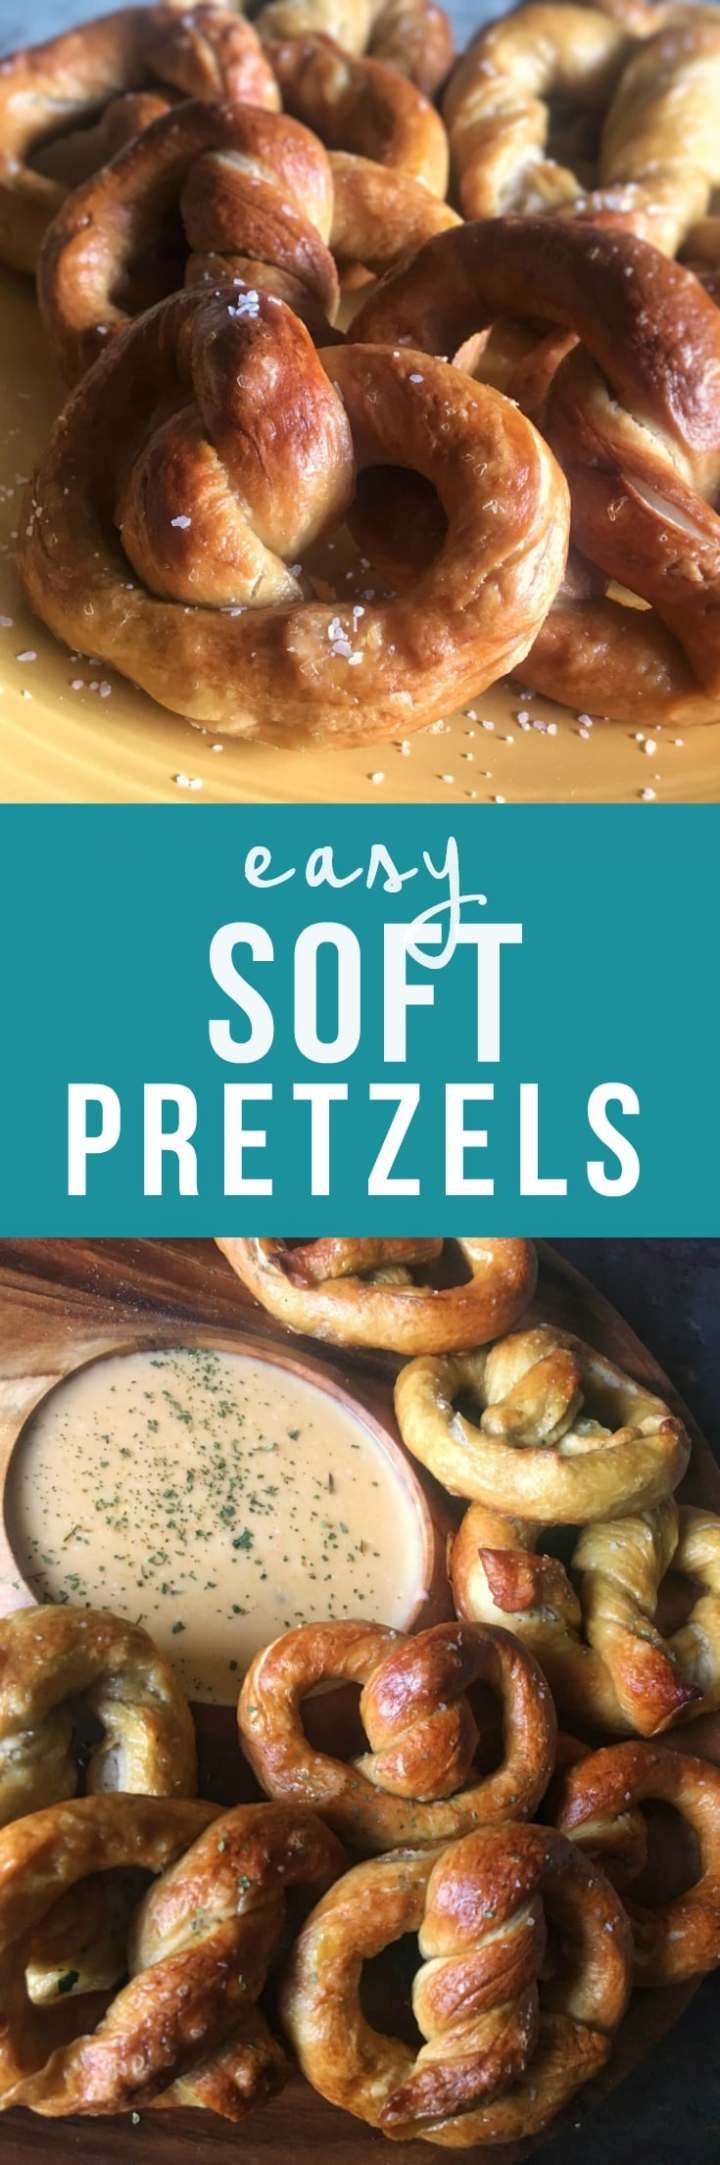 This soft pretzel recipe may even be better than that mall kiosk. Soft, chewy, easy homemade pretzels in 45 minutes, start to finish.